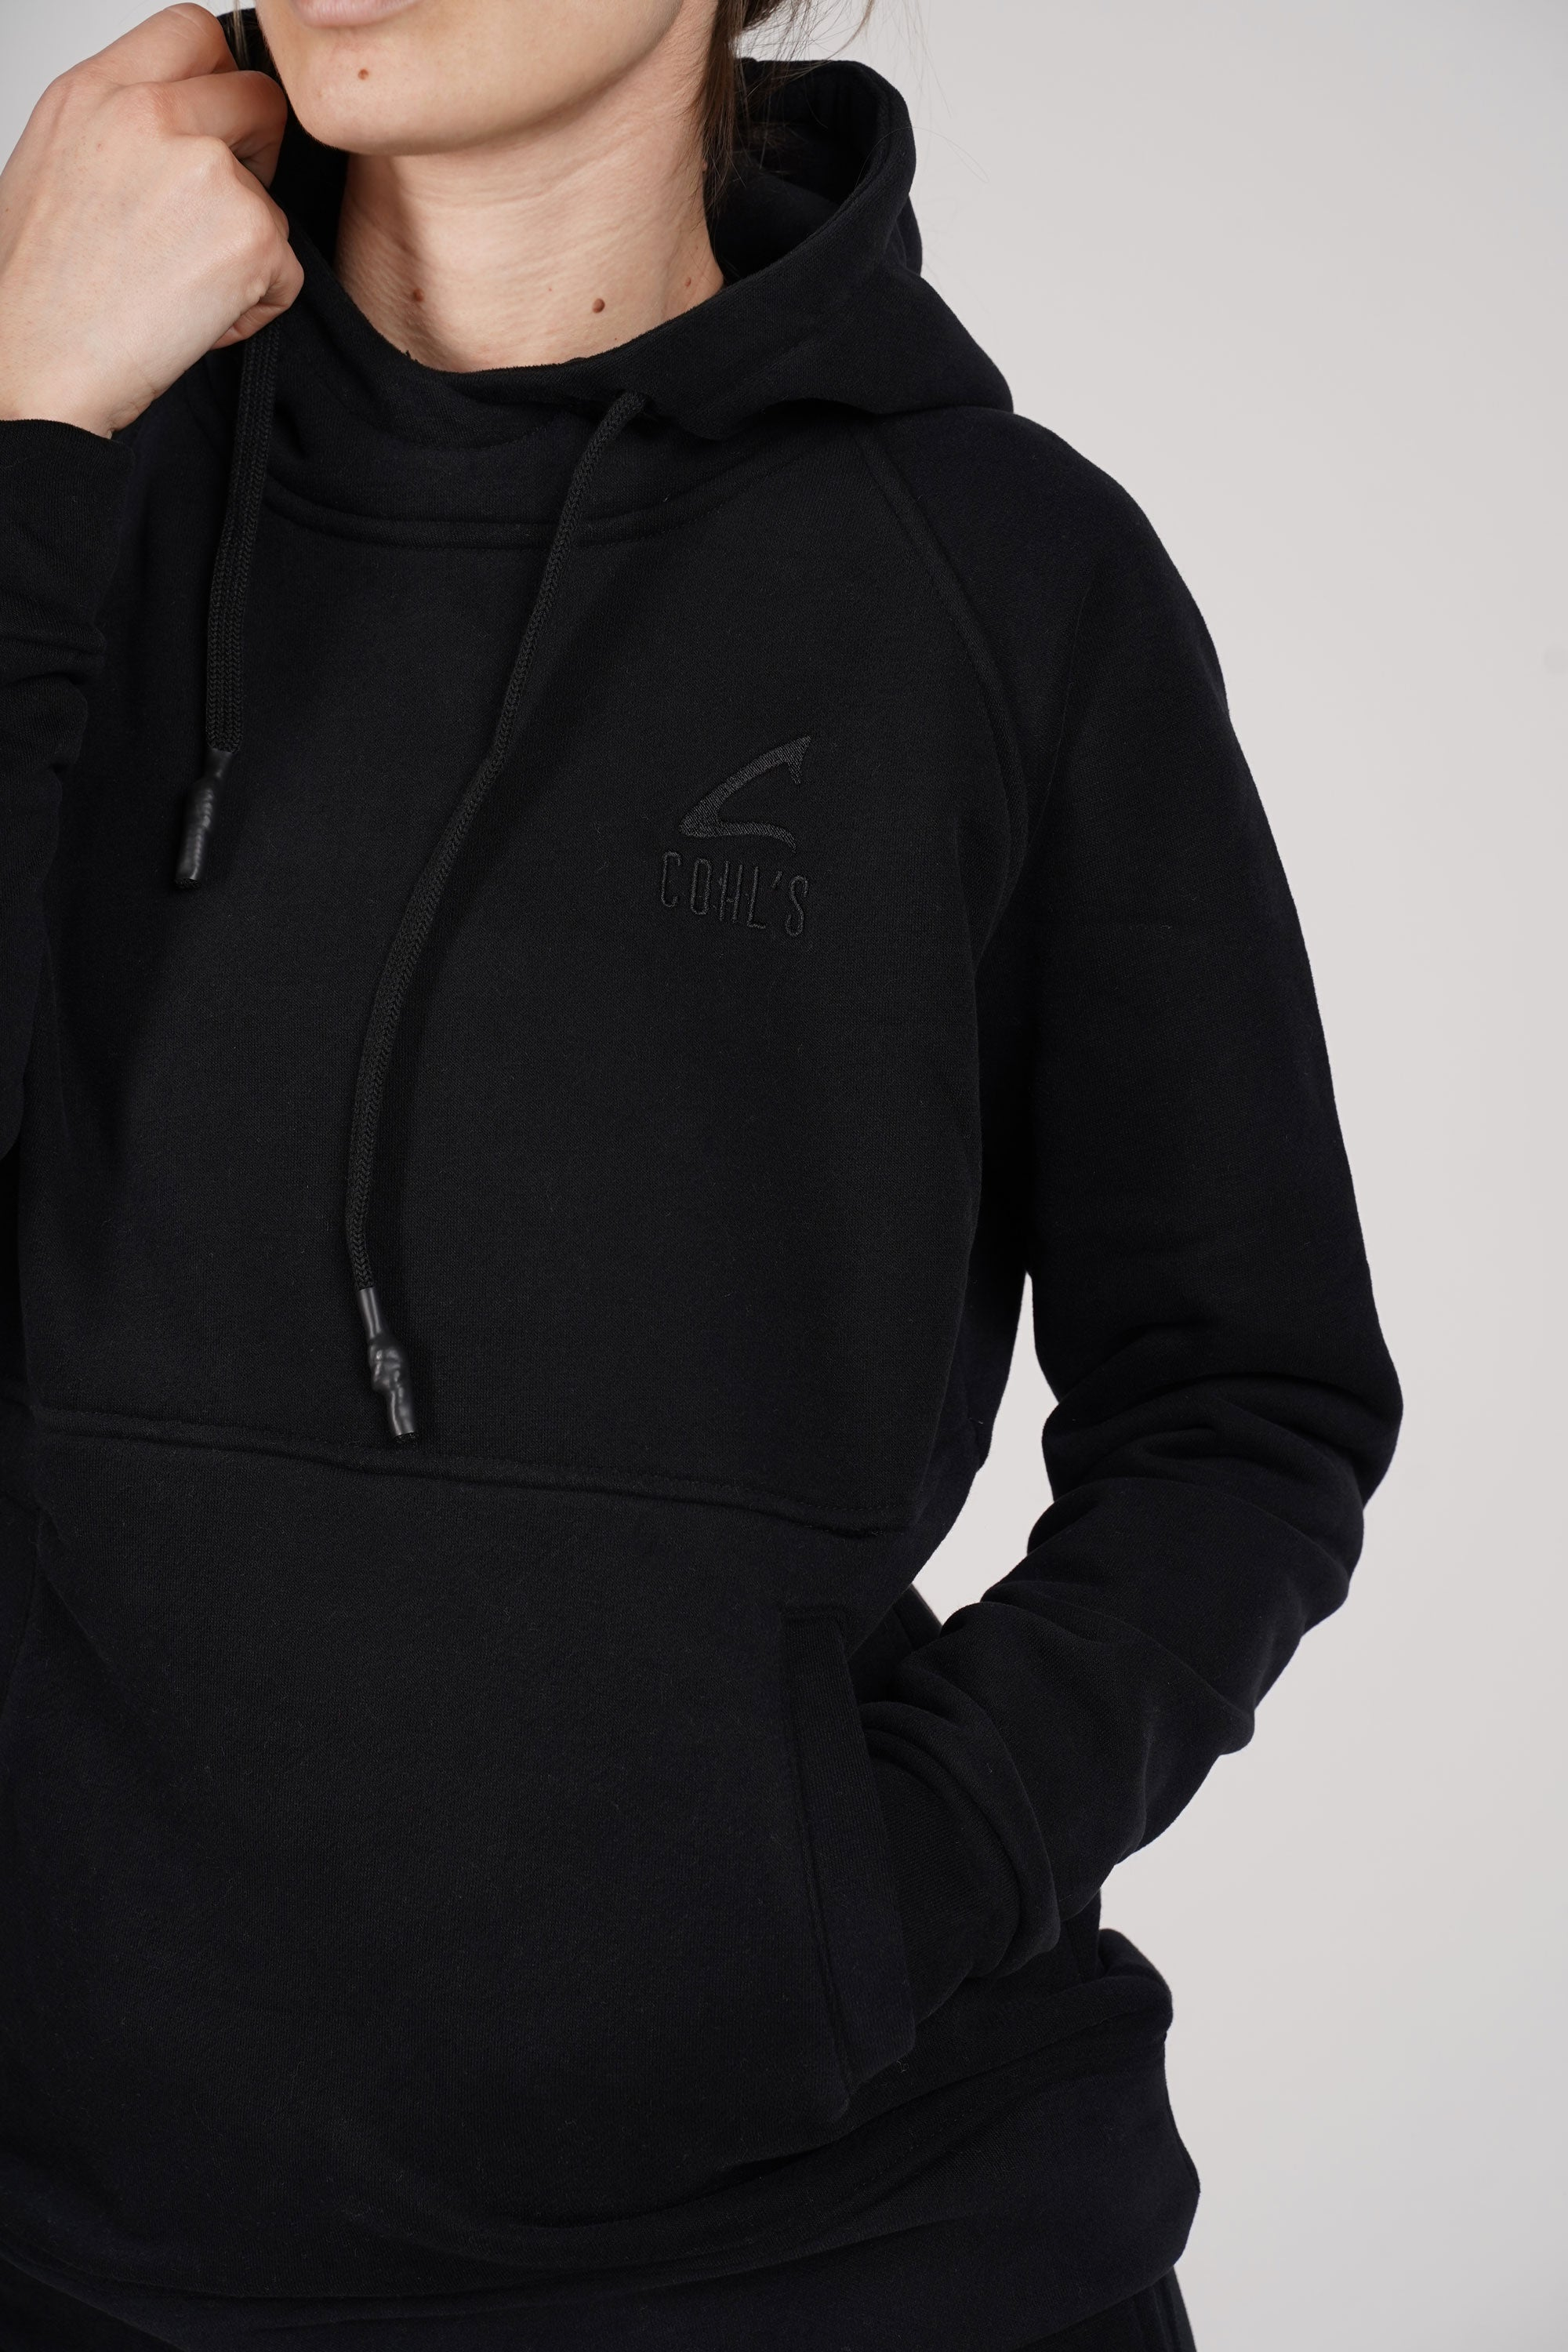 Black Basic Hoodie With side pockets - C162025